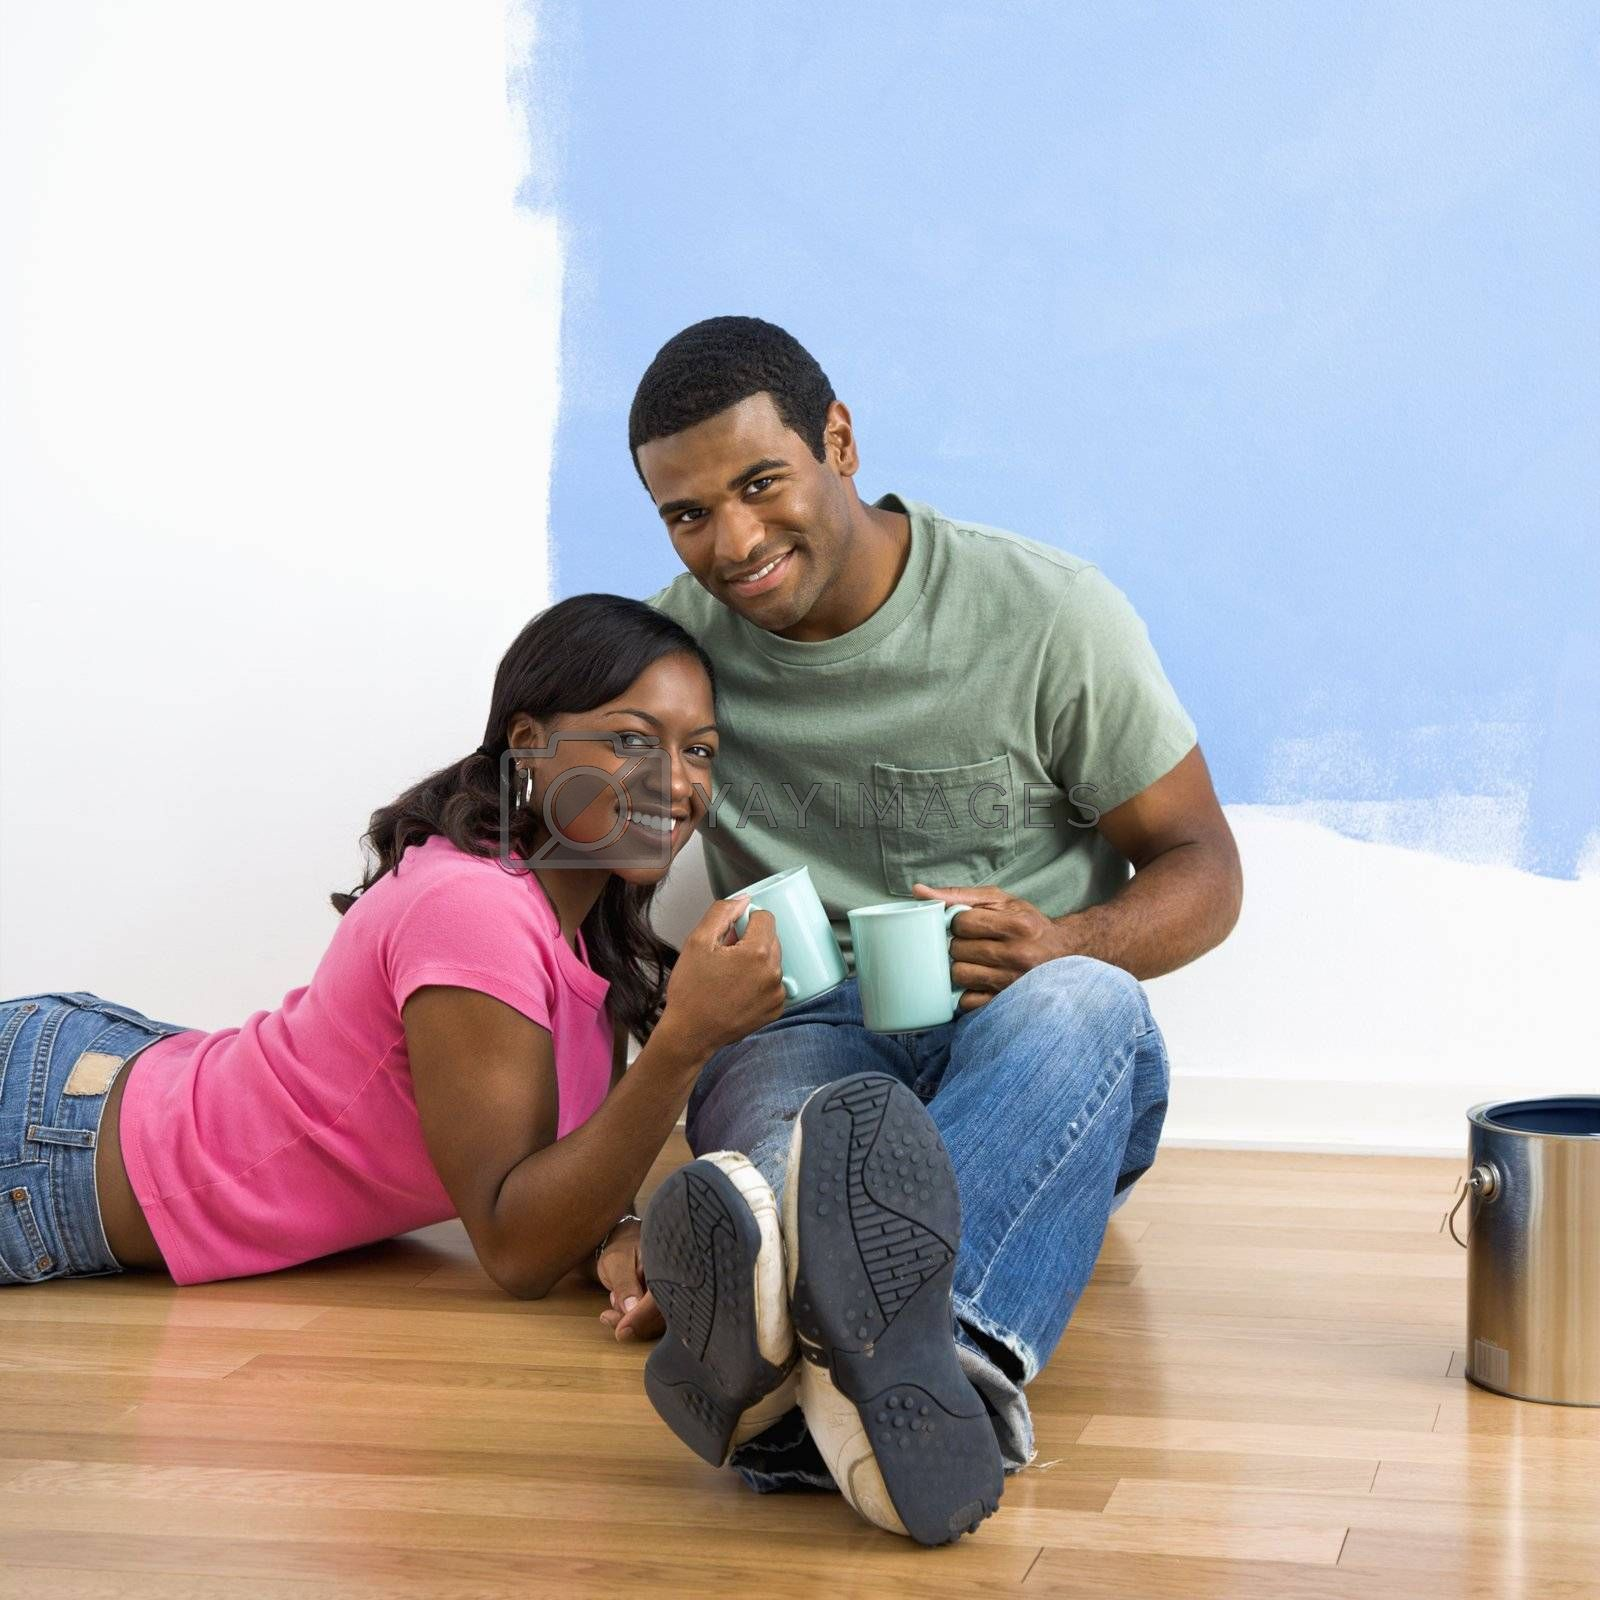 African American couple relaxing together with coffee next to half-painted wall.